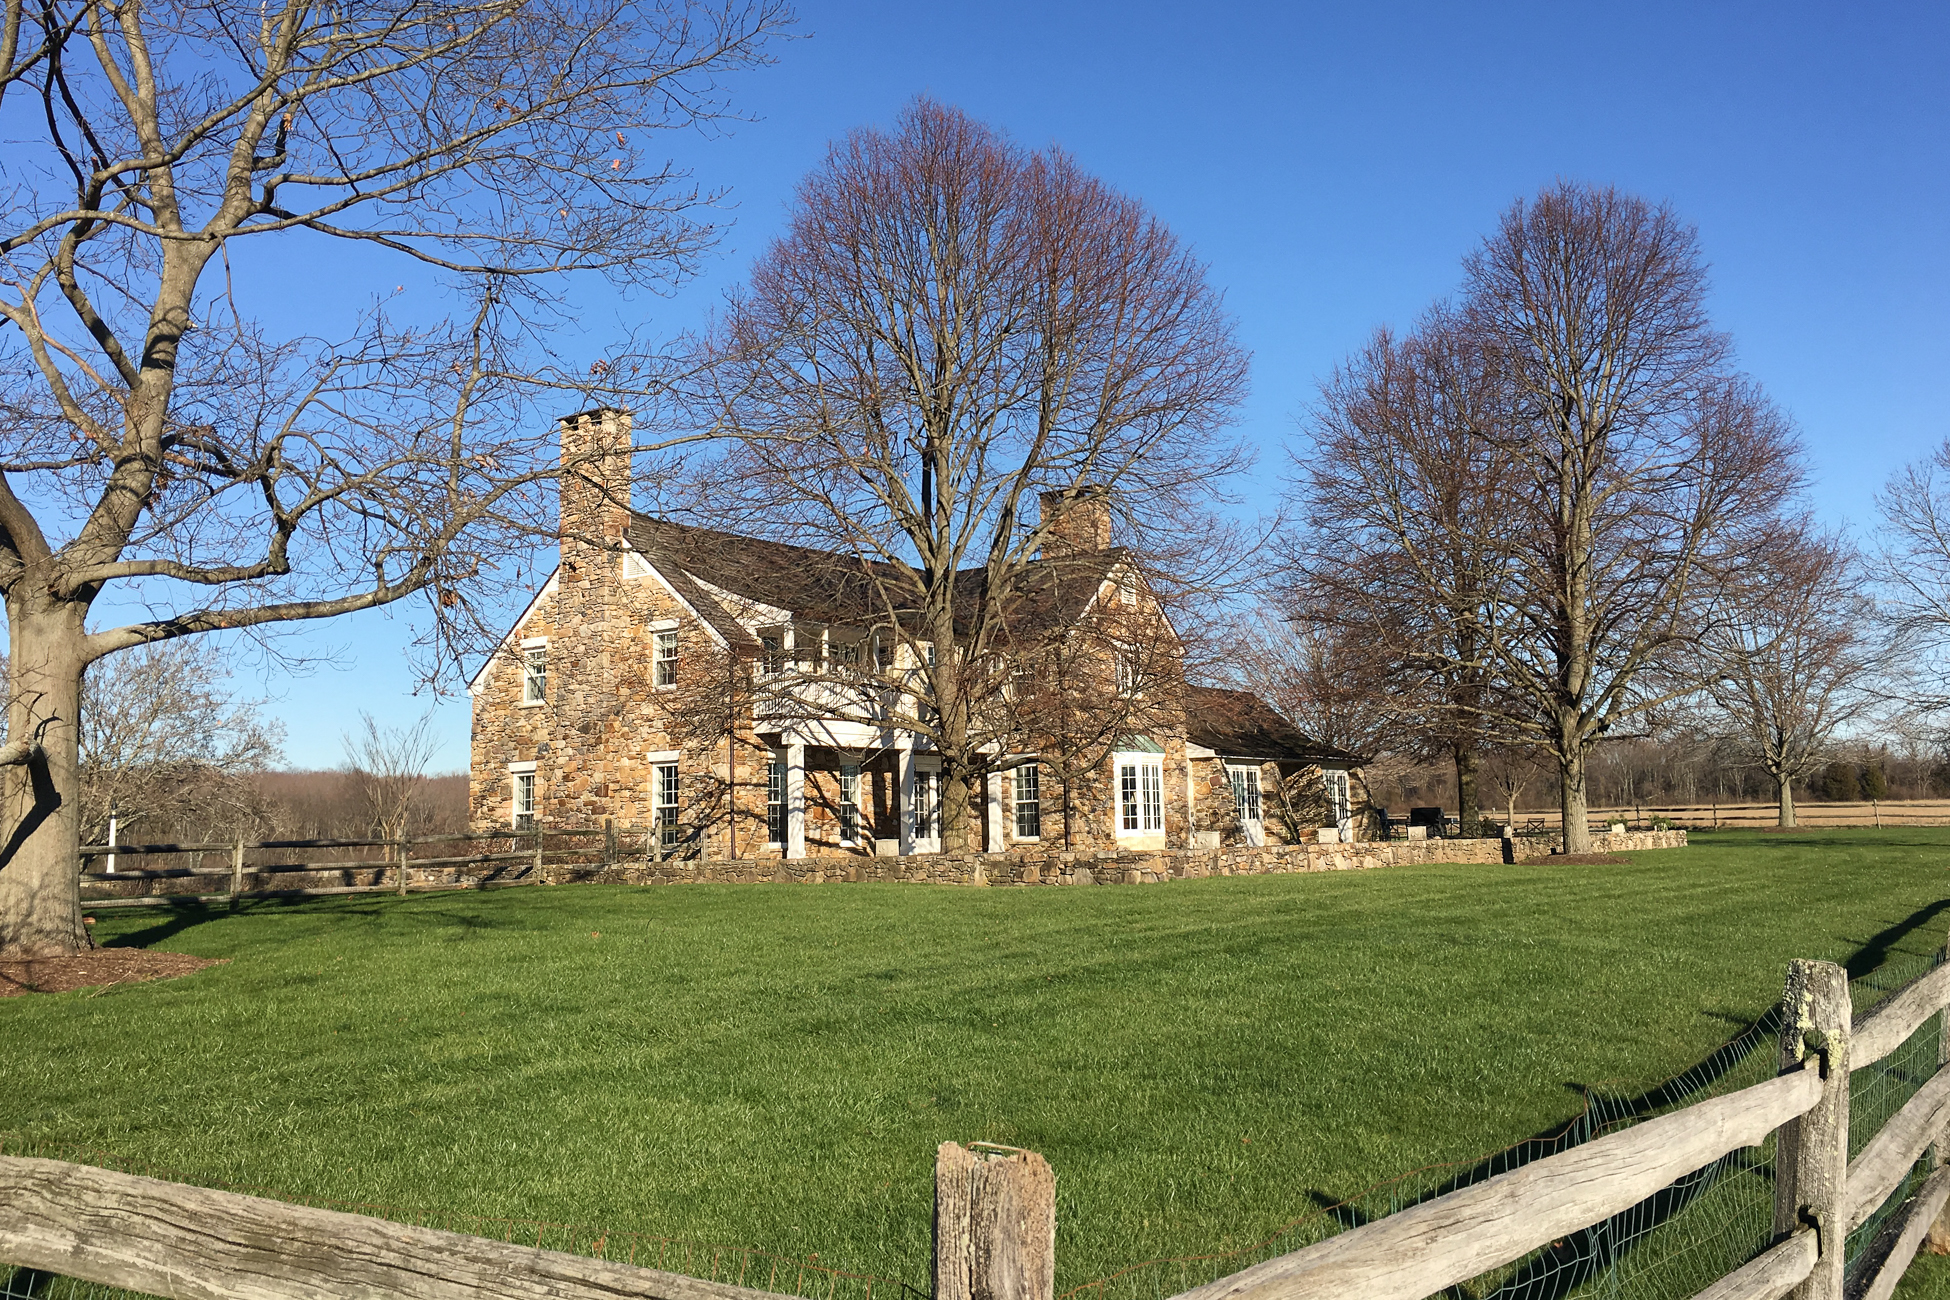 Maison unifamiliale pour l Vente à Rare Opportunity - 101 Acres within Minutes of Princeton 126 Moores Mill Mount Rose Road Hopewell, New Jersey, 08525 États-Unis